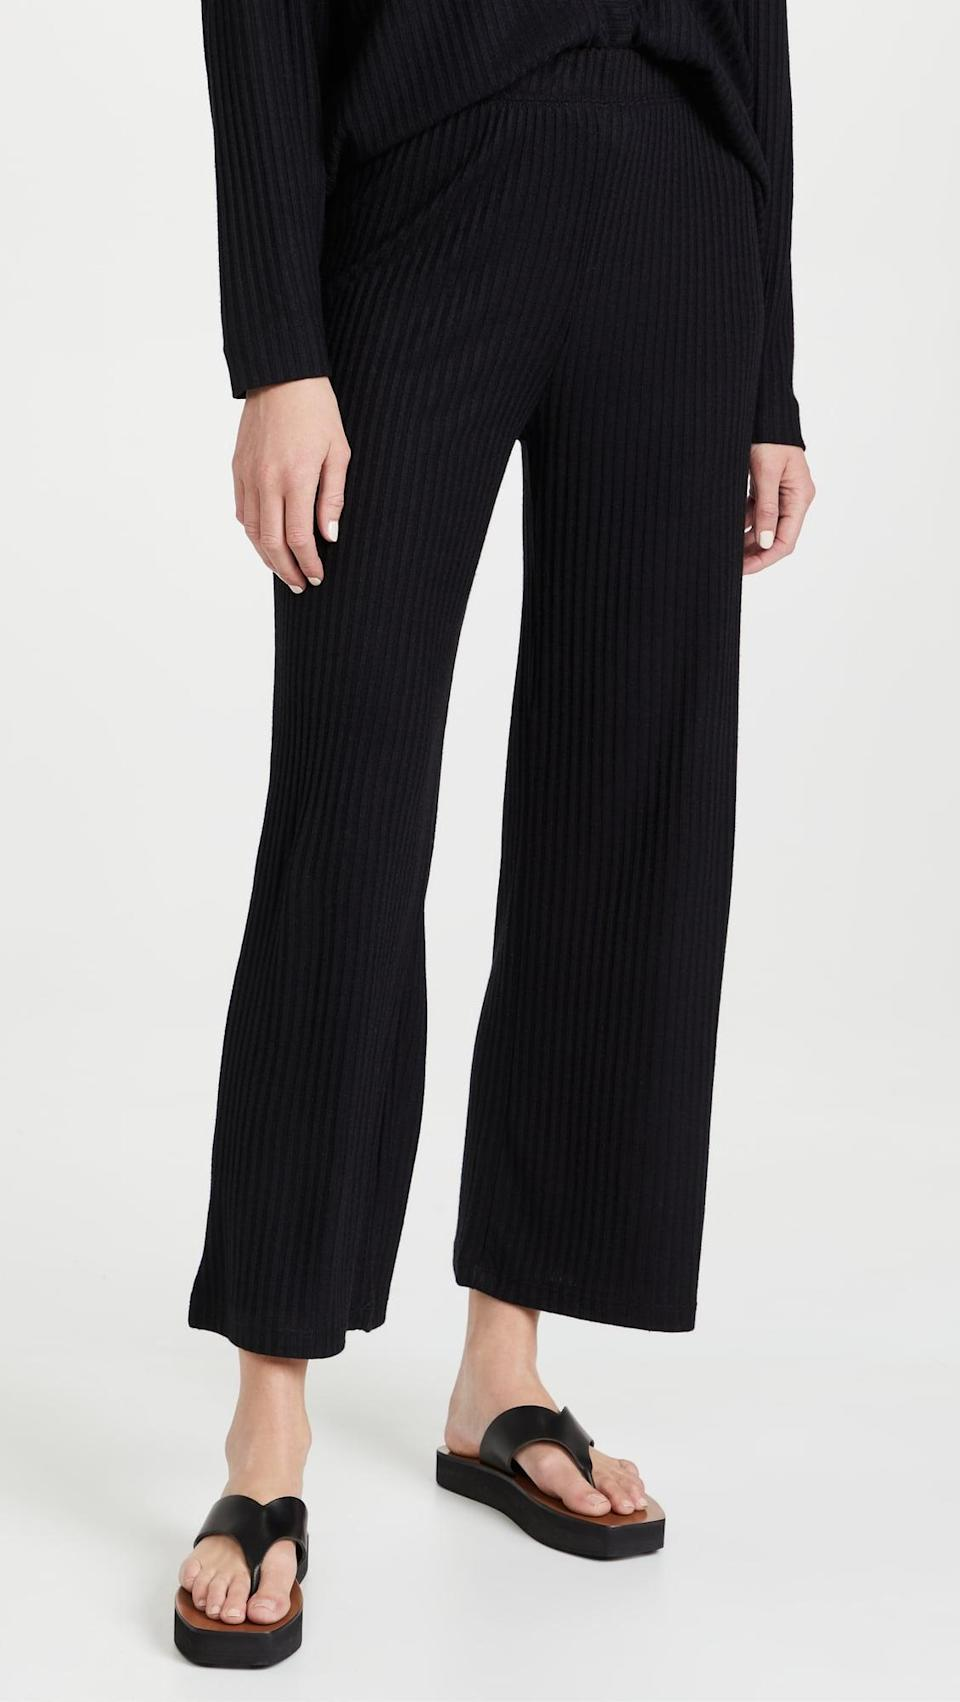 <p>We're fans of pants that feel like sweats, but don't really look like it. Get the <span>Z Supply Geri Sweatpants</span> ($72) to wear for the days you just want to be comfy.</p>